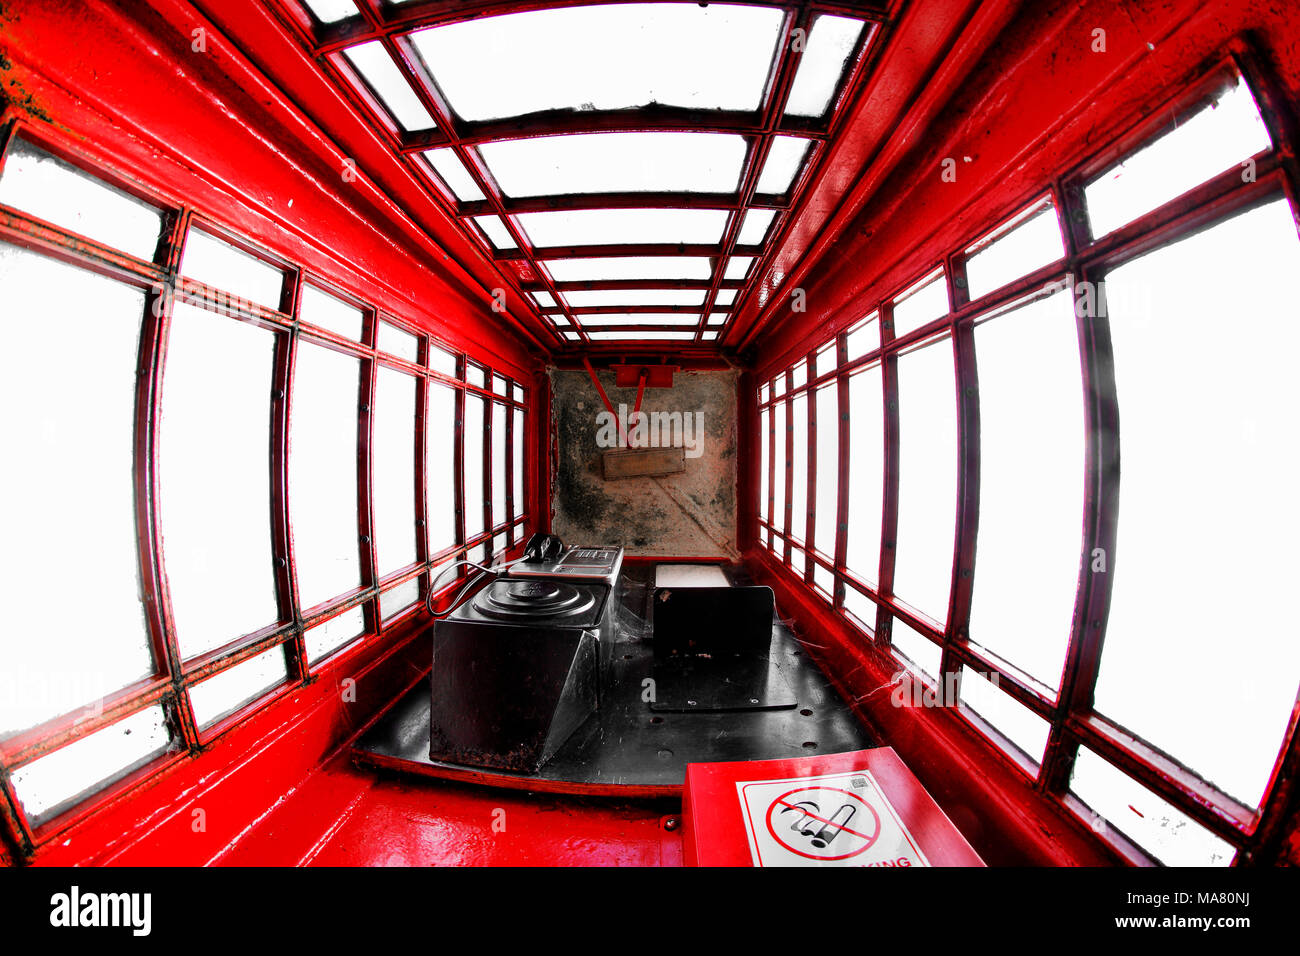 Looking up from ground level inside a Red Uk Telephone Box - Stock Image